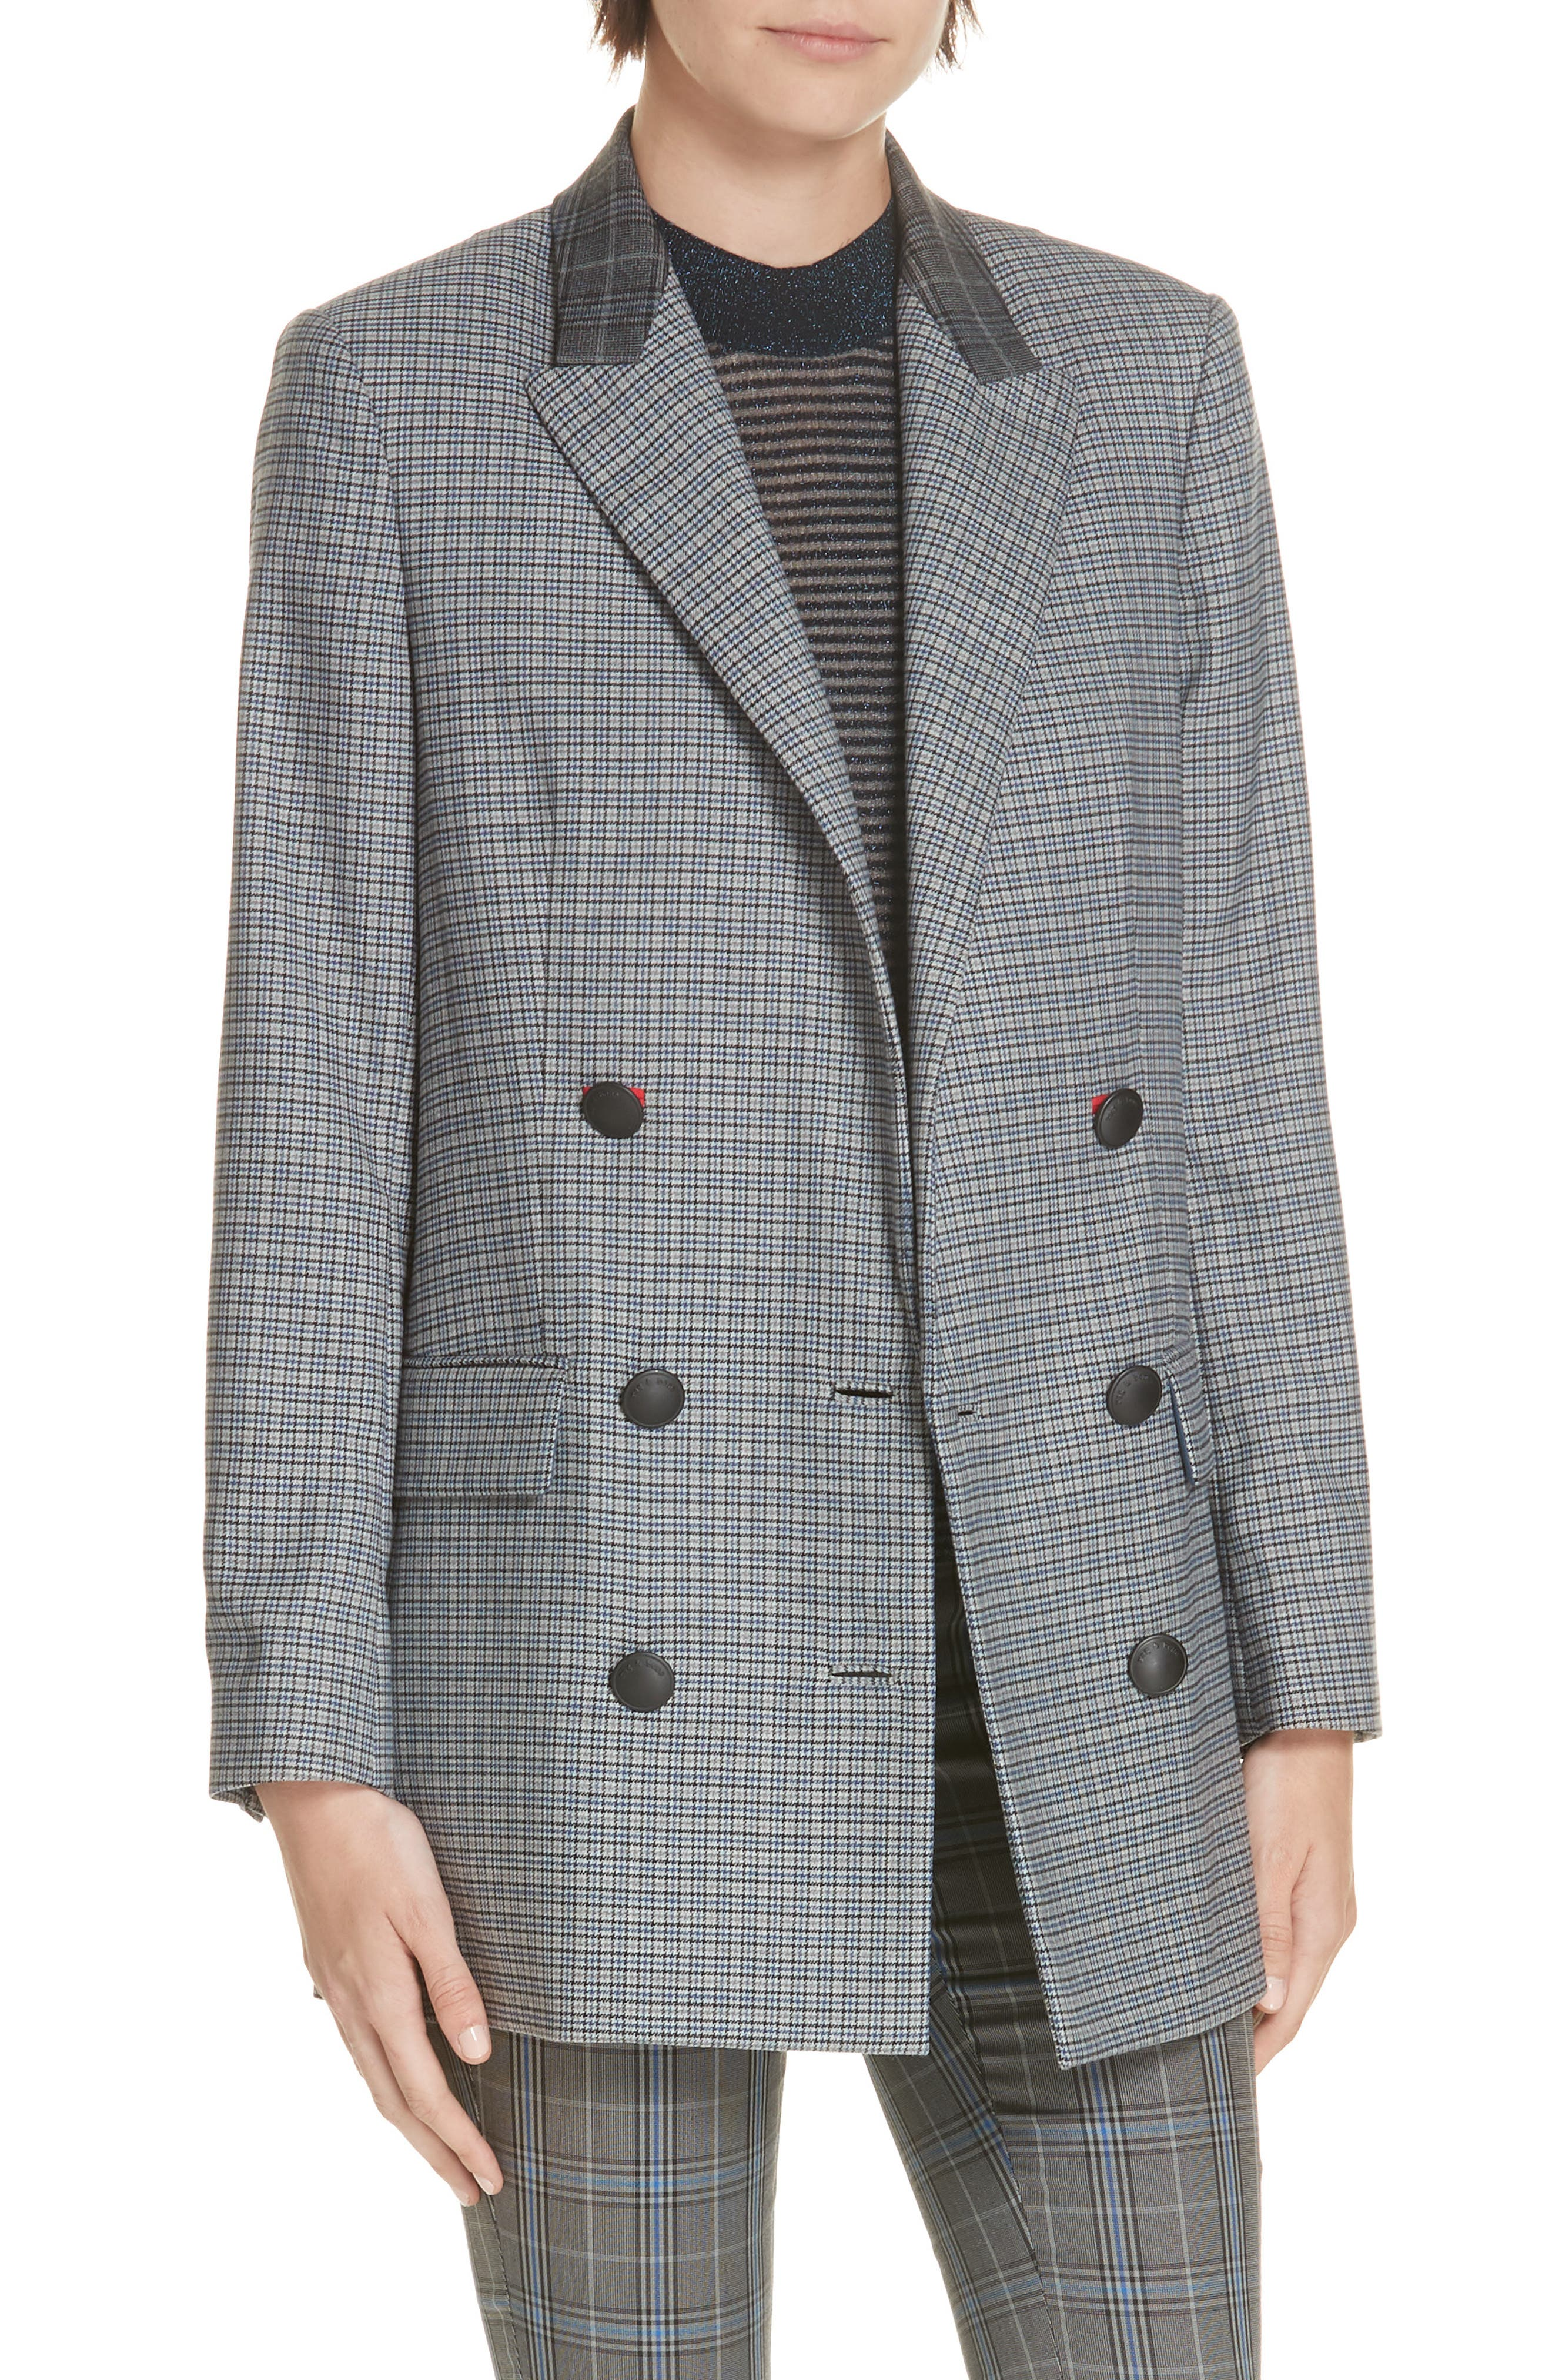 Ellie Check Wool Blend Blazer,                             Main thumbnail 1, color,                             LTGRY/ BLUCHK